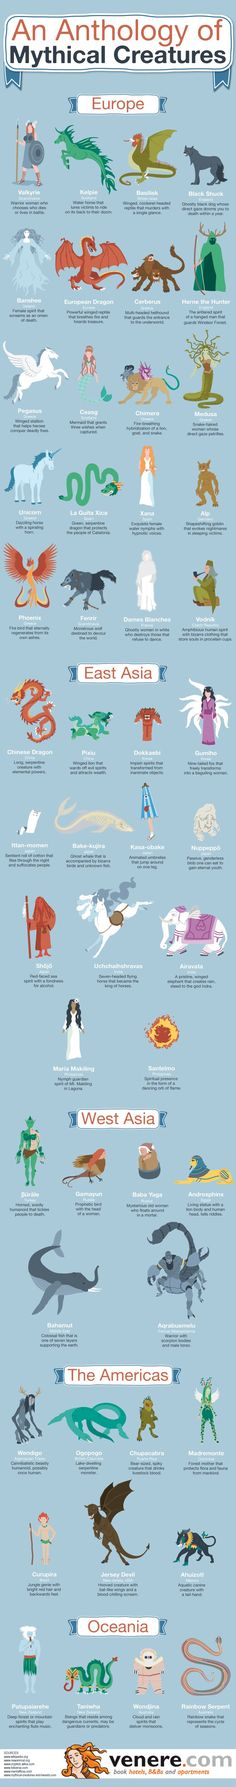 Infographic: Mythical Creatures From Around The World | Dragons and unicorns and demons oh my!